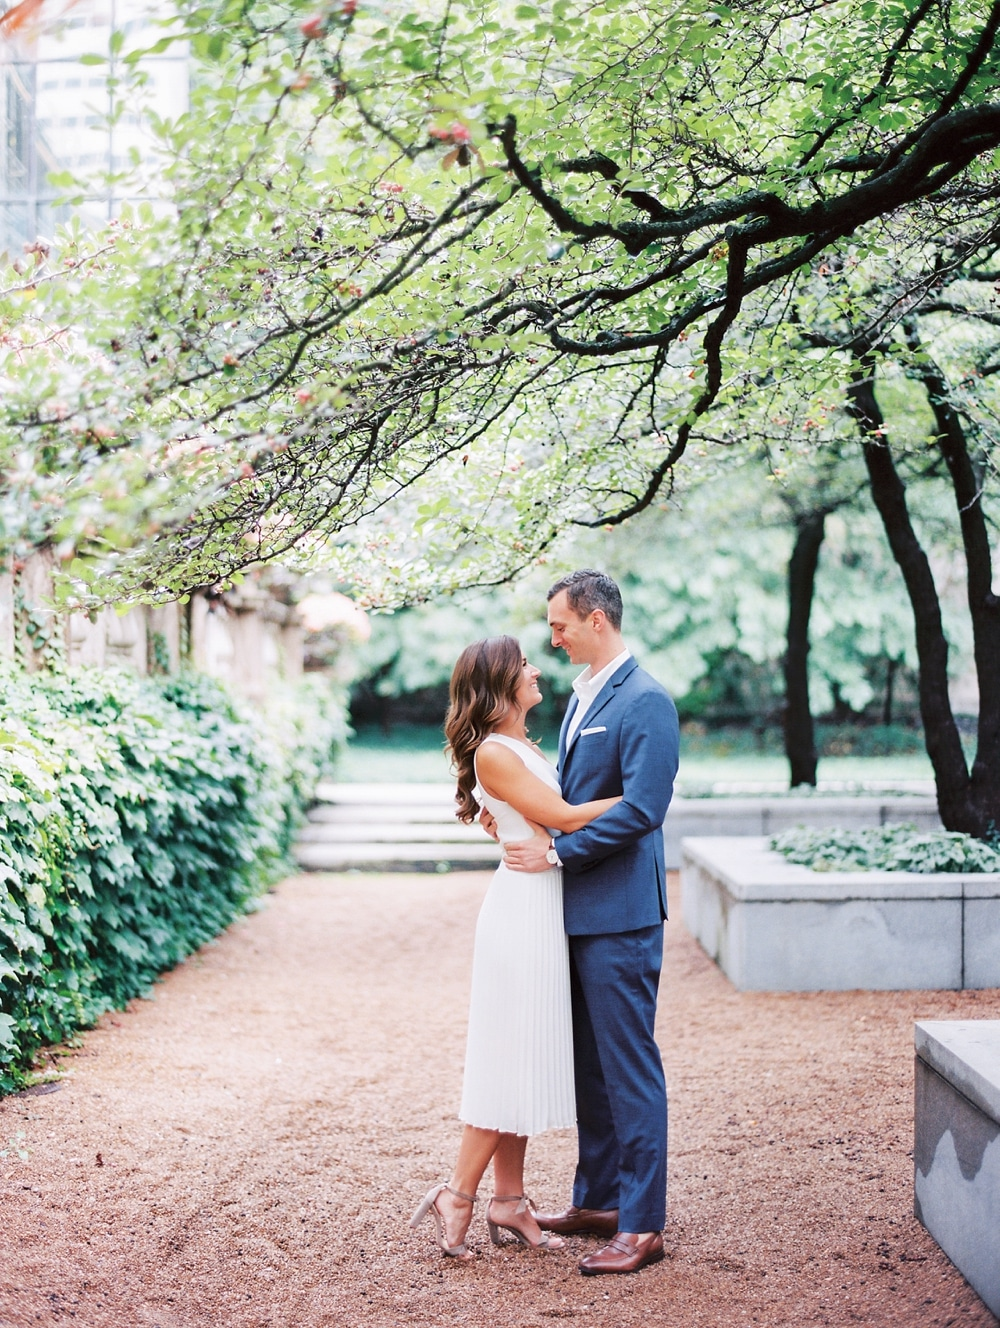 Kristin-La-Voie-Photography-chicago-art-institute-engagement-wedding-photos-40